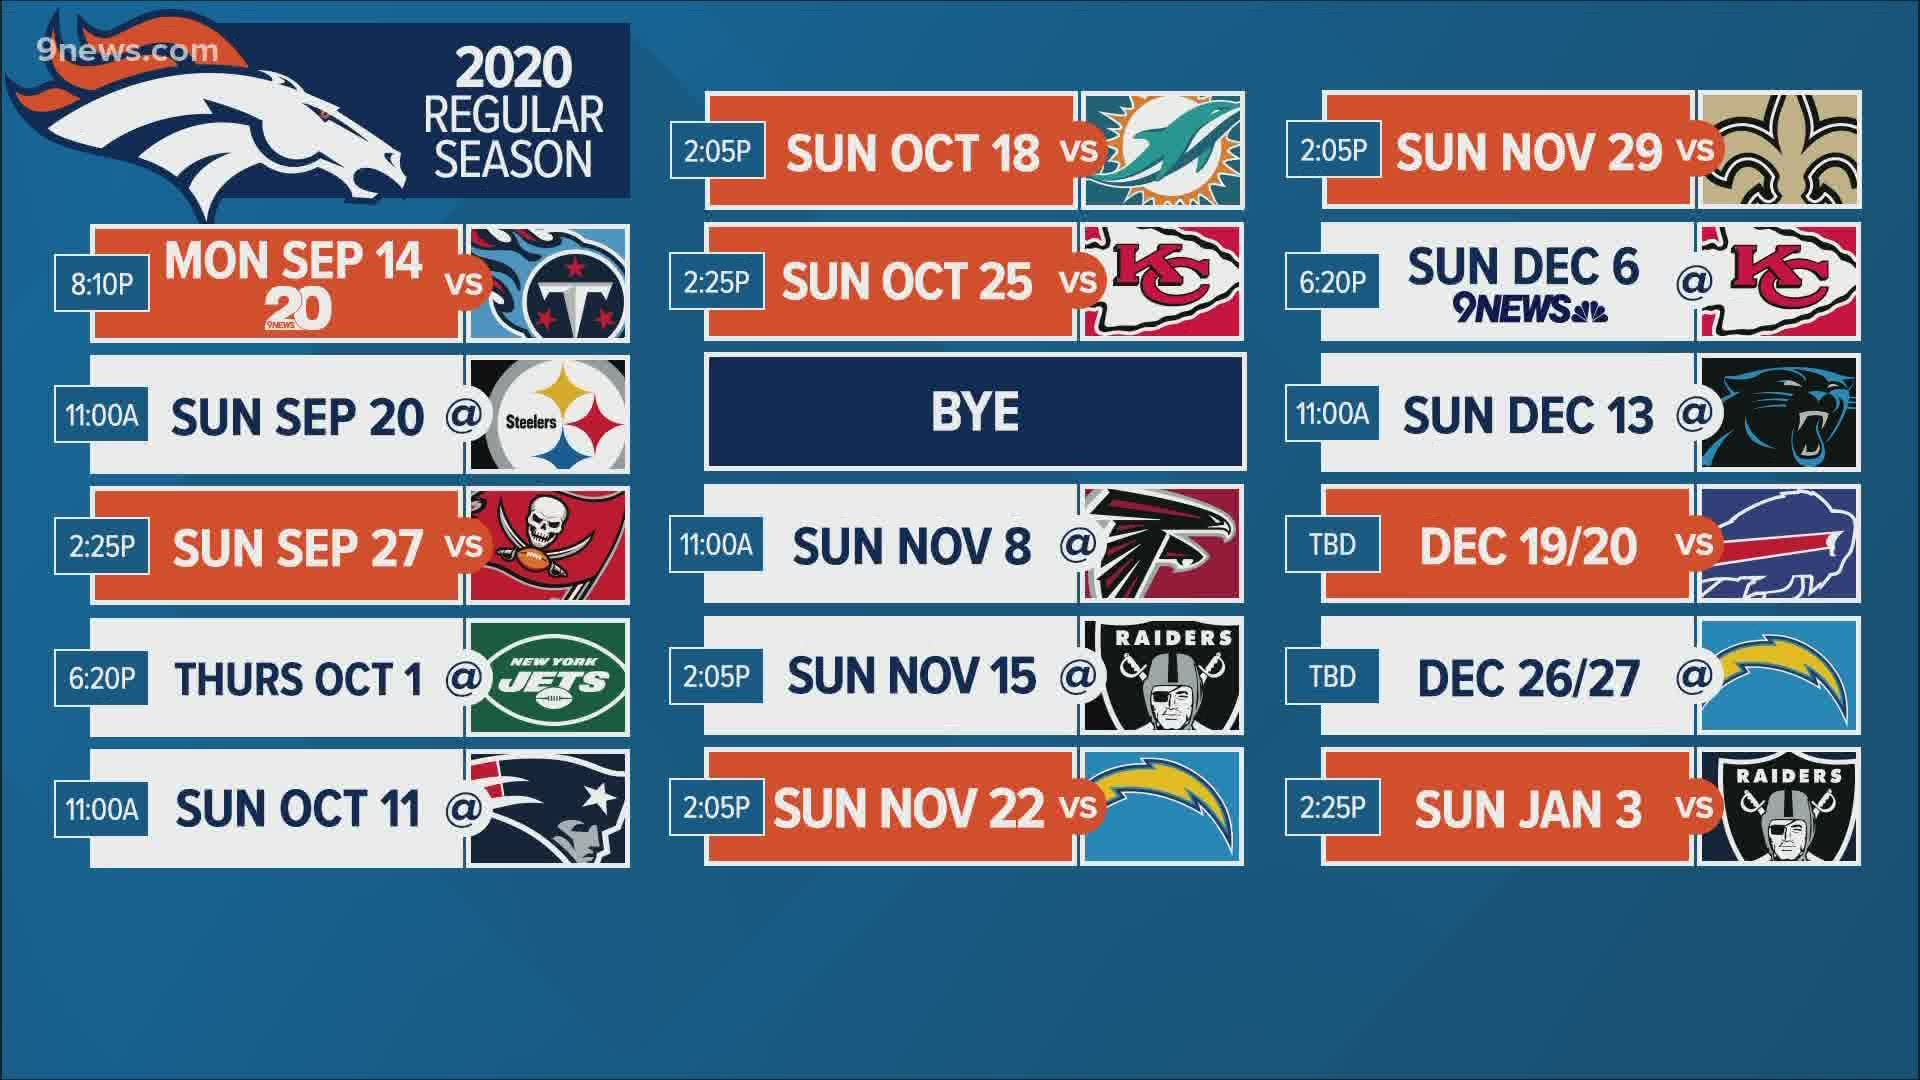 Nfl Schedule 2020 Christmas Denver Broncos 2020 NFL preseason and regular season schedule